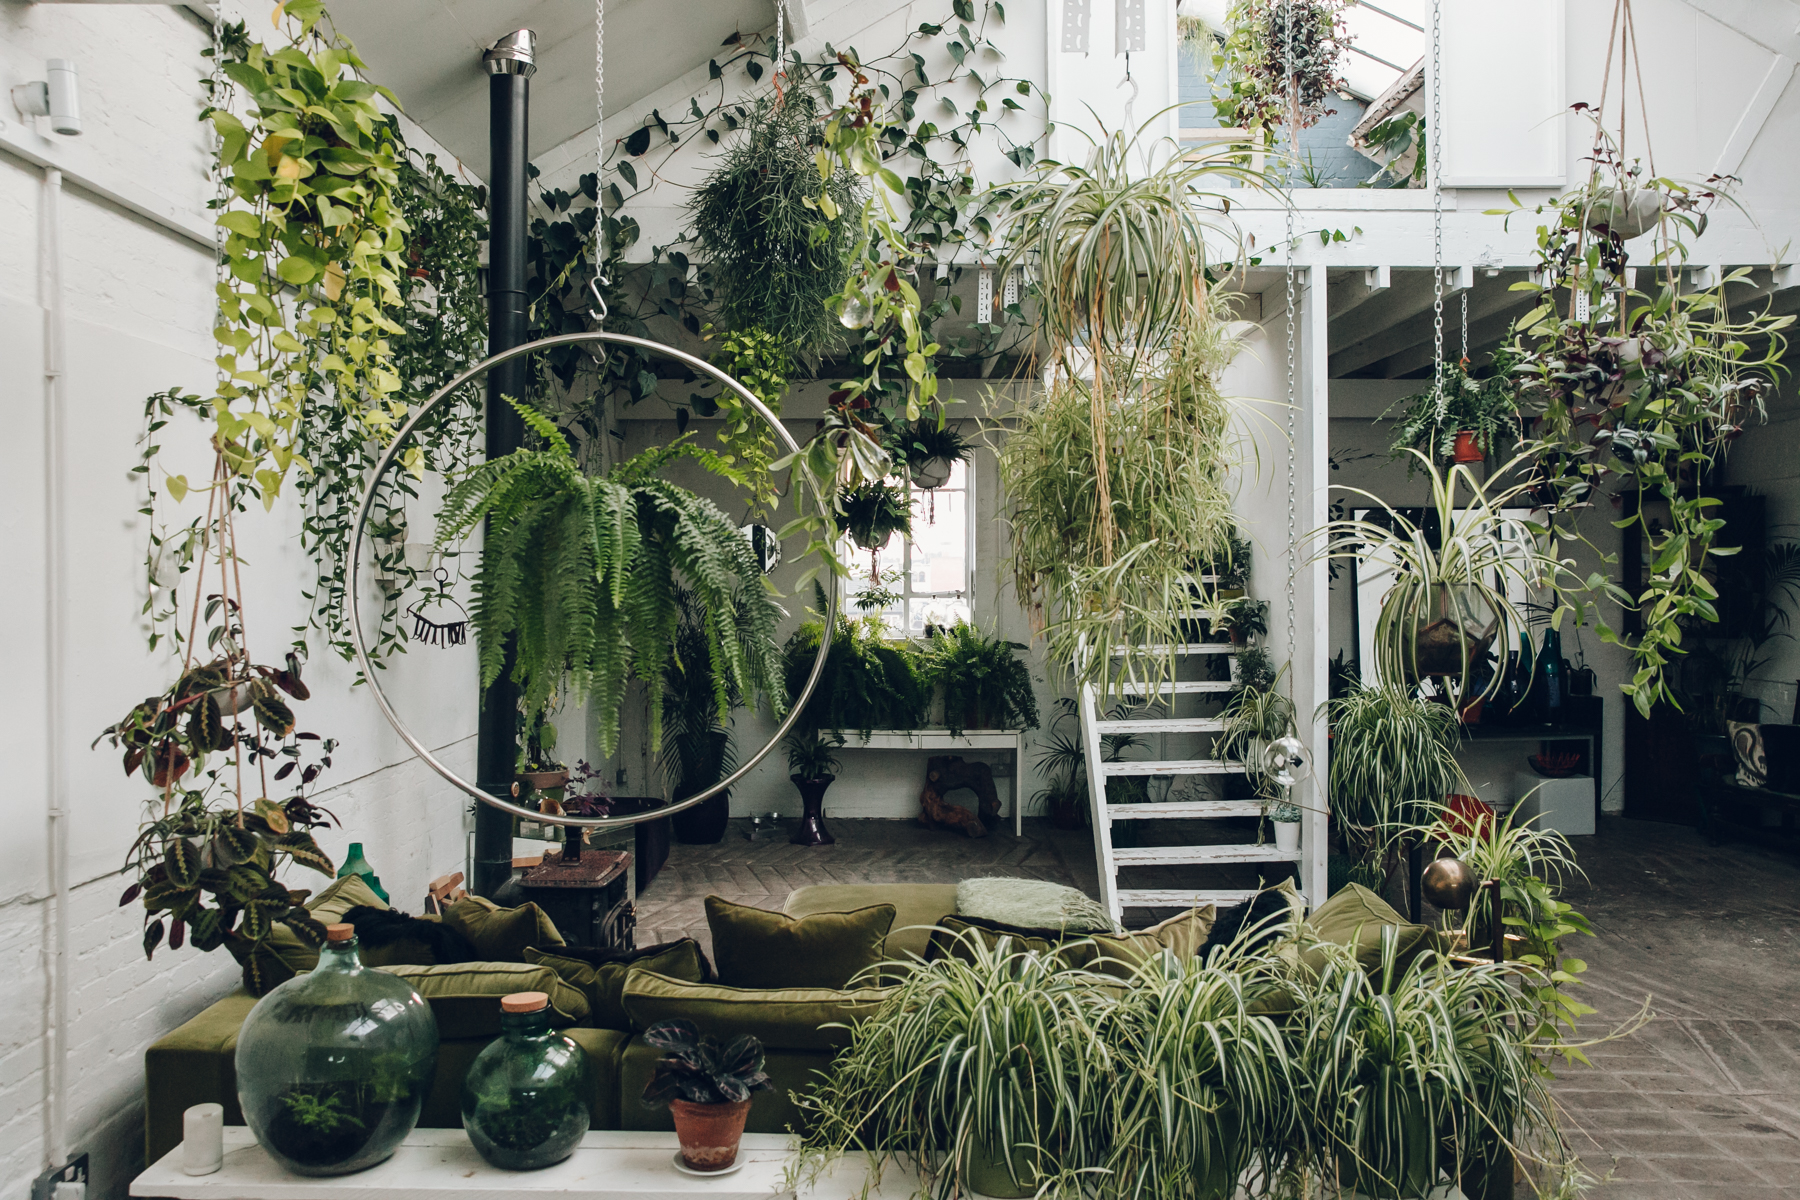 Clapton Tram - a plant-filled warehouse space in London.